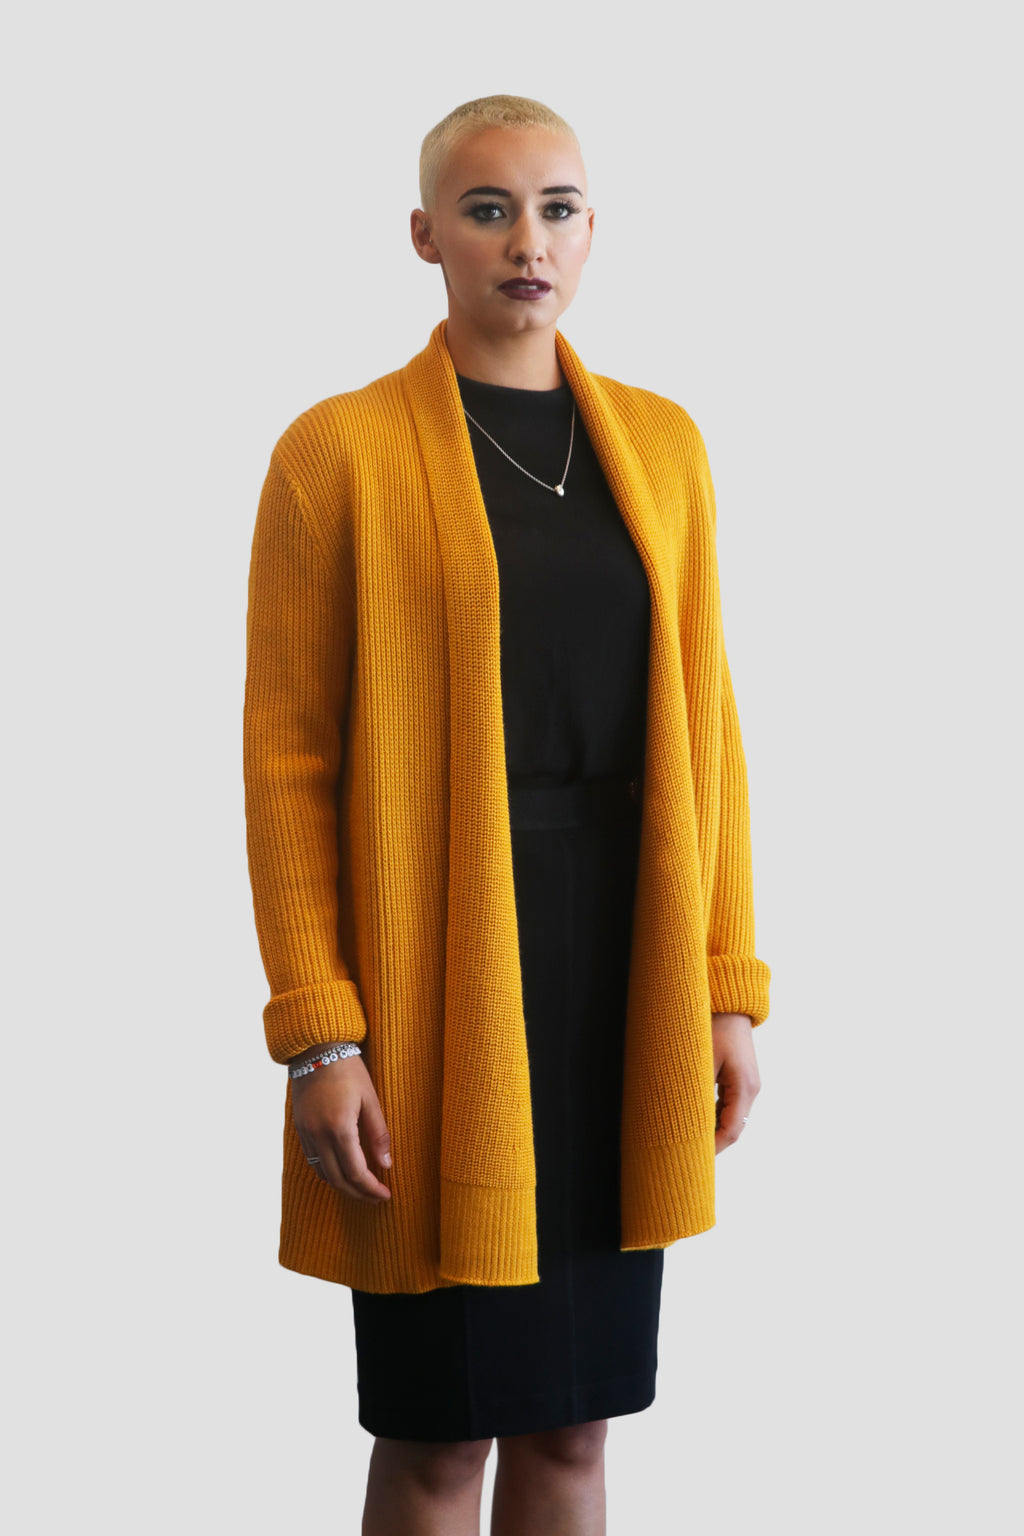 WOOL-BLEND OPEN-FRONT CARDIGAN Heavy knit wool-blend open-front cardigan for women. Style this Emma Chai open-front cardigan with Marc Jacobs, Plakinger, and Liliana. bright color bold color @emmachaiofficial emma chai